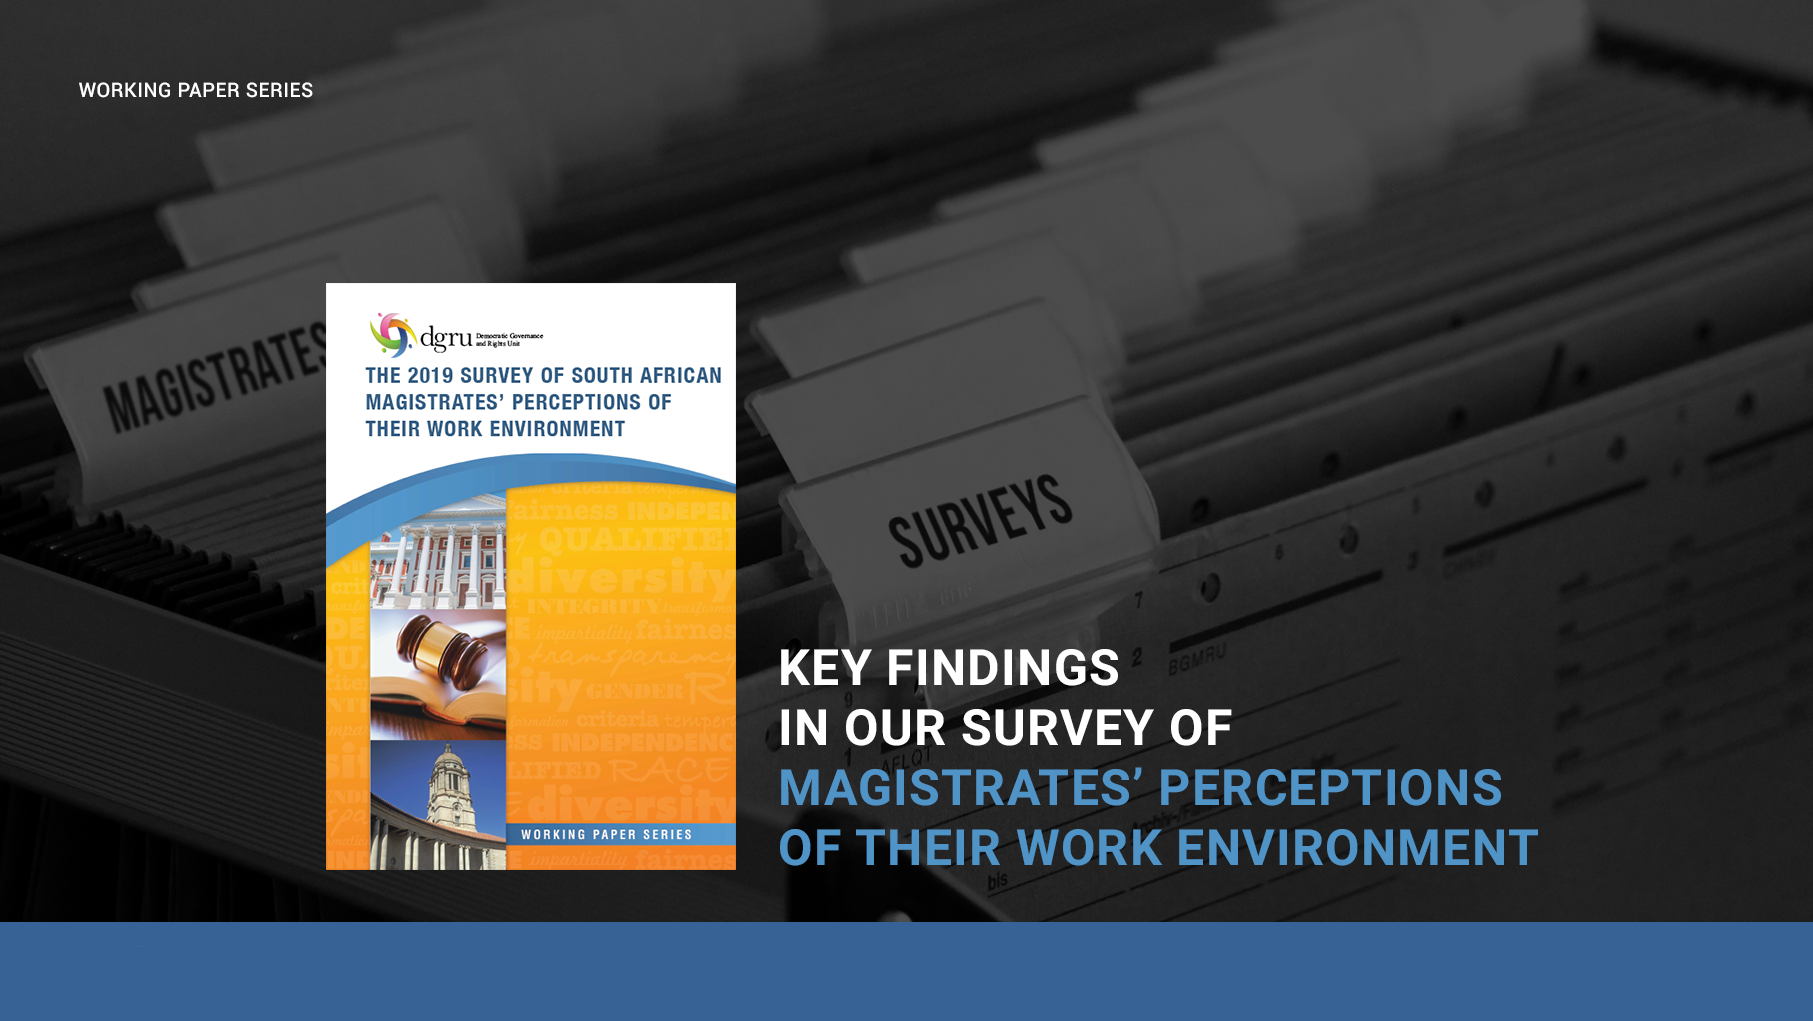 Key findings Magistrates' survey